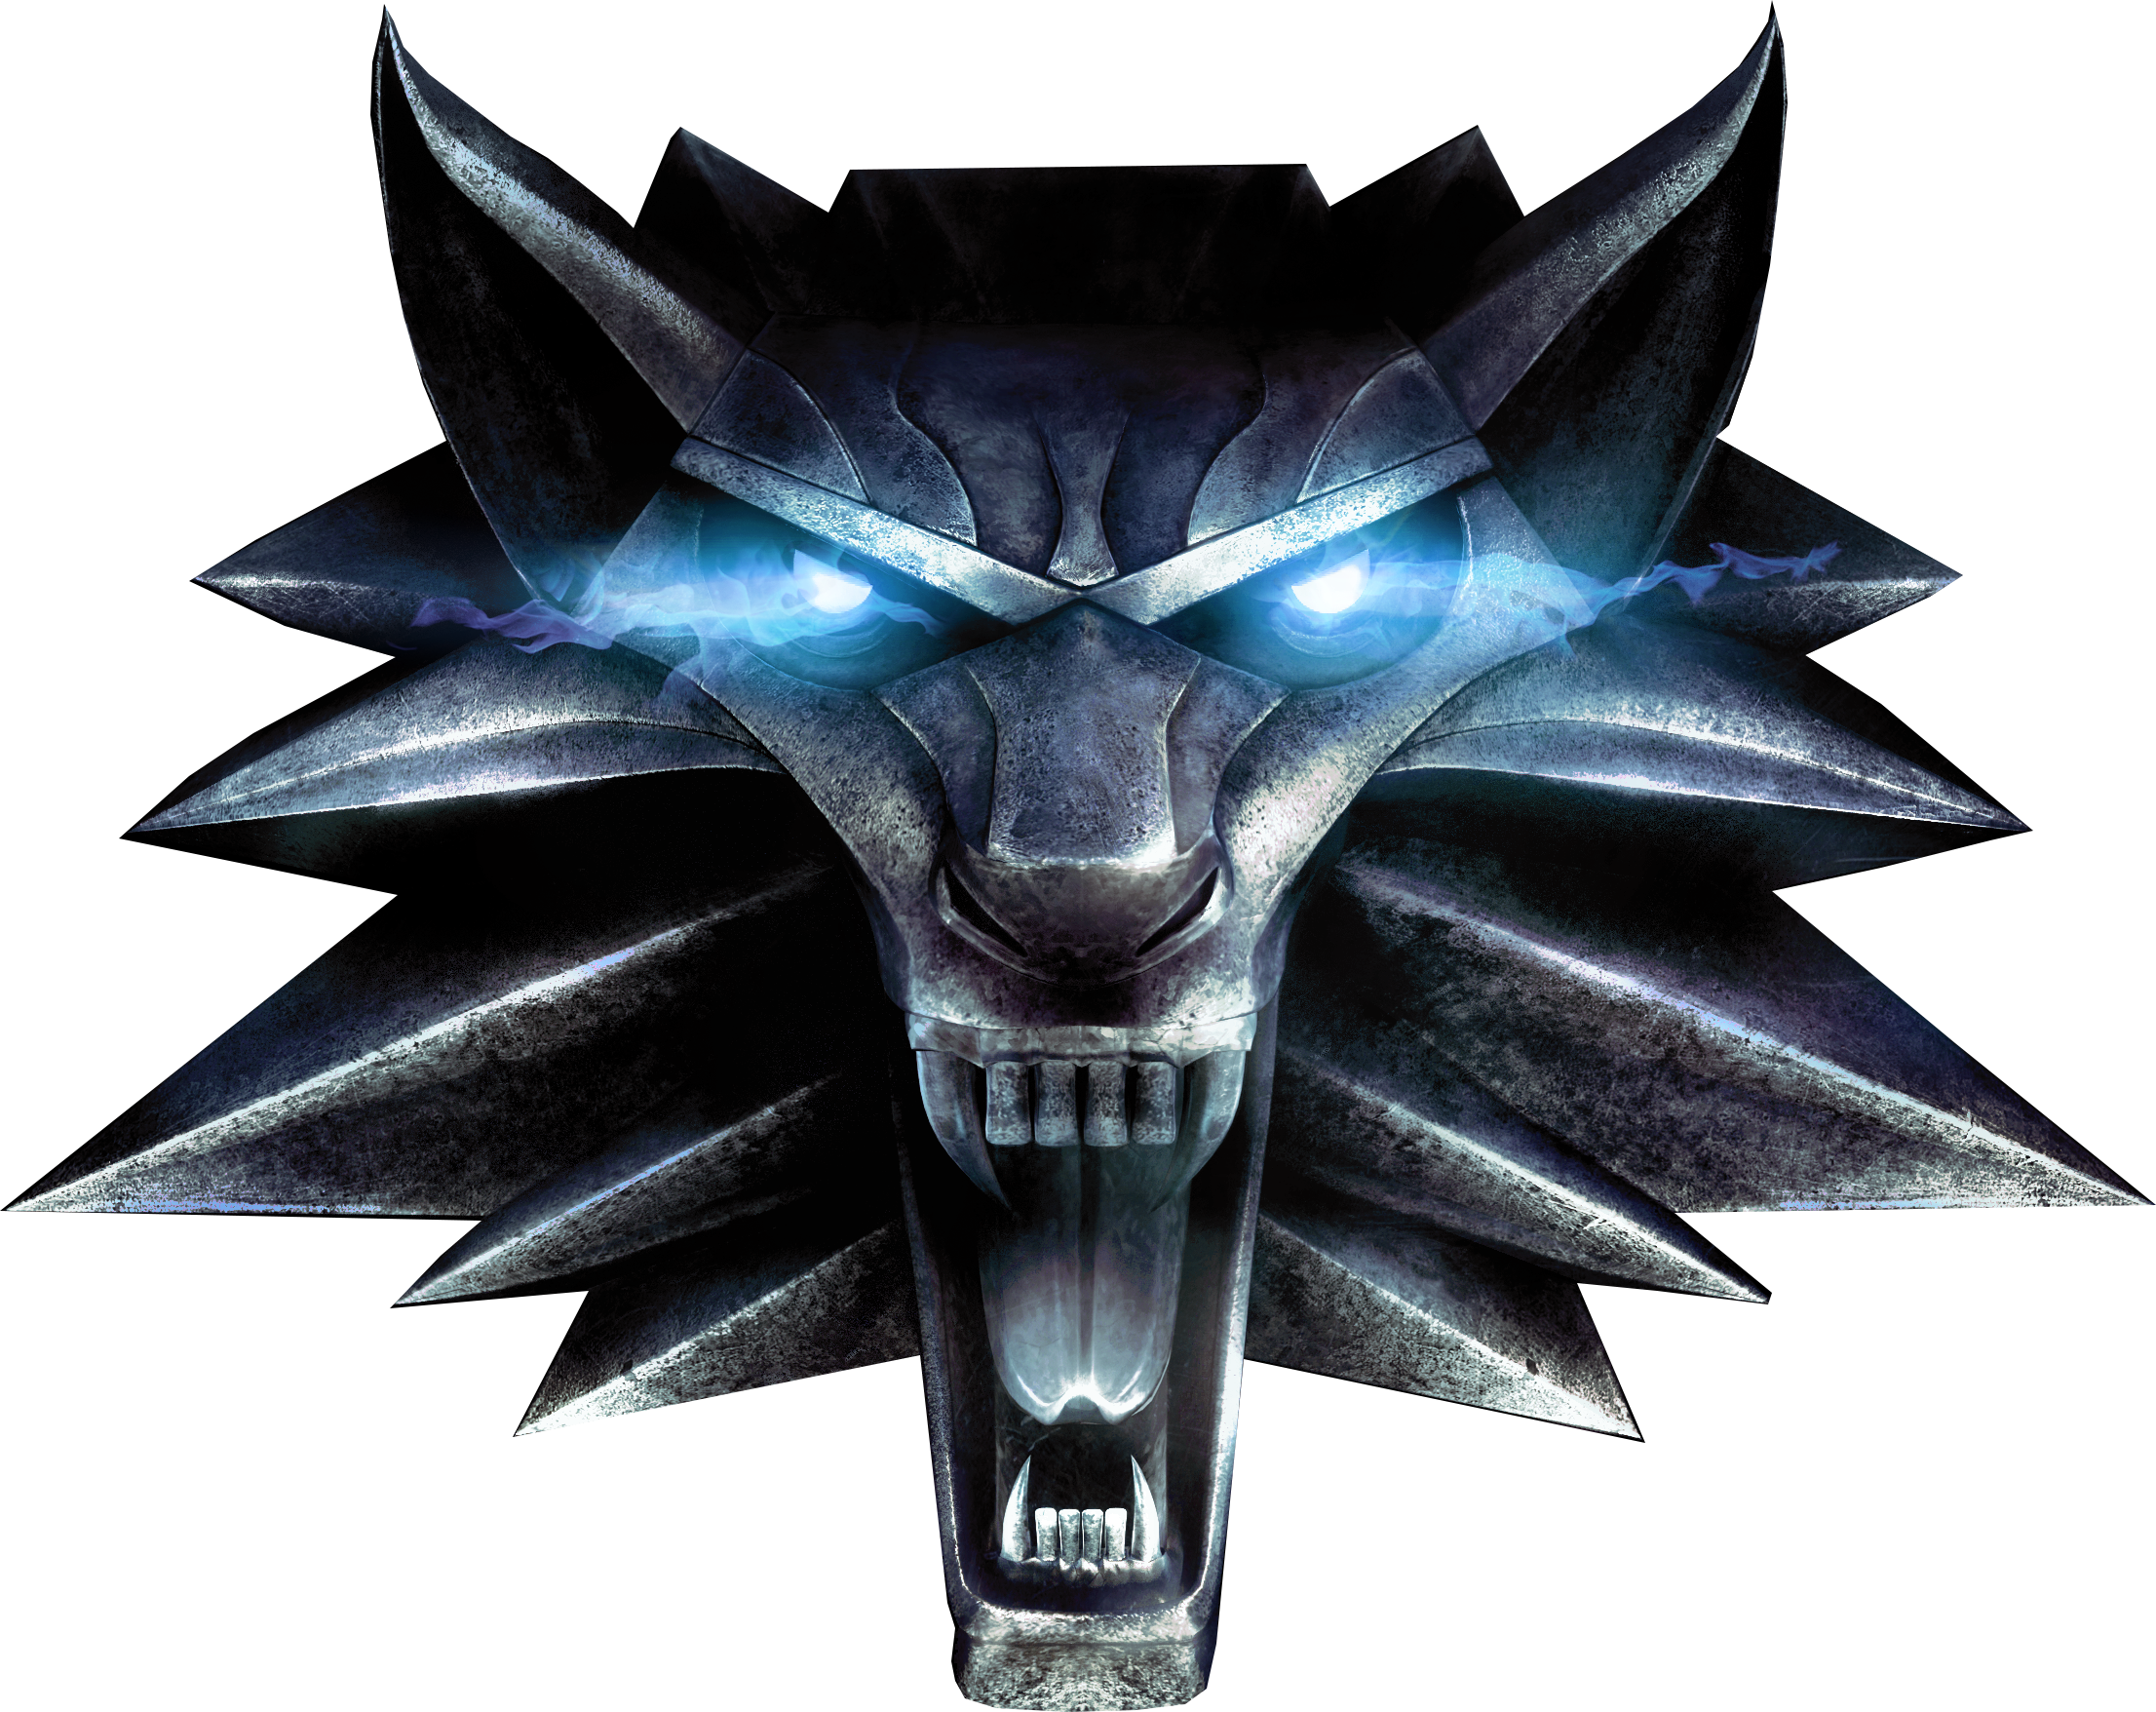 Witcher 3 wolf png. Image twrotww medallion wiki